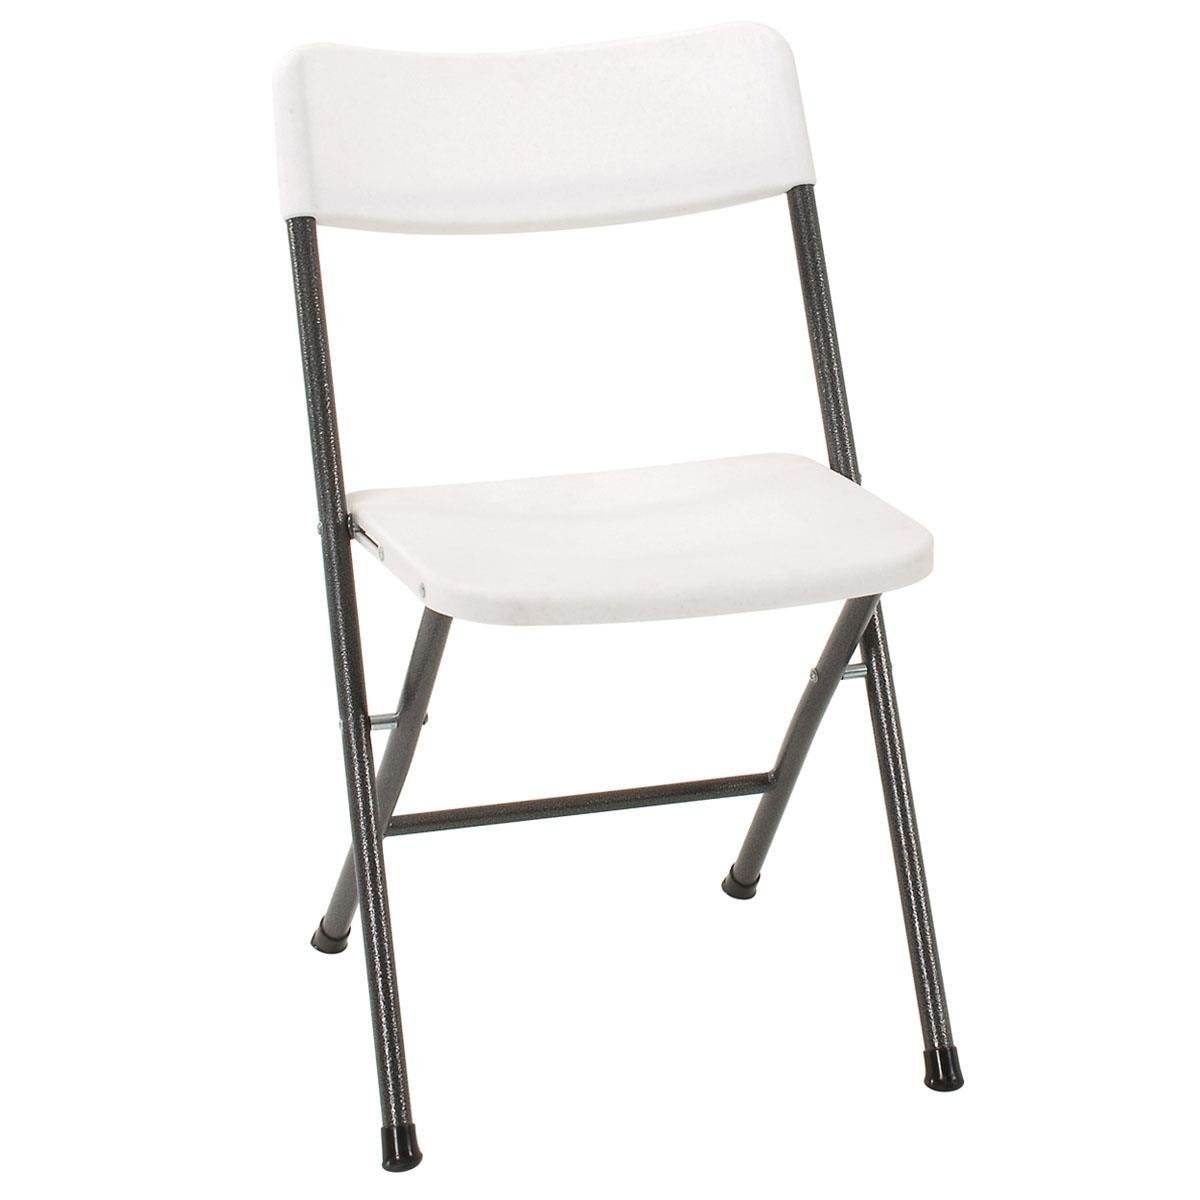 Cosco Resin Folding Chair with Molded Seat and Back White Speckle, 4-Pack